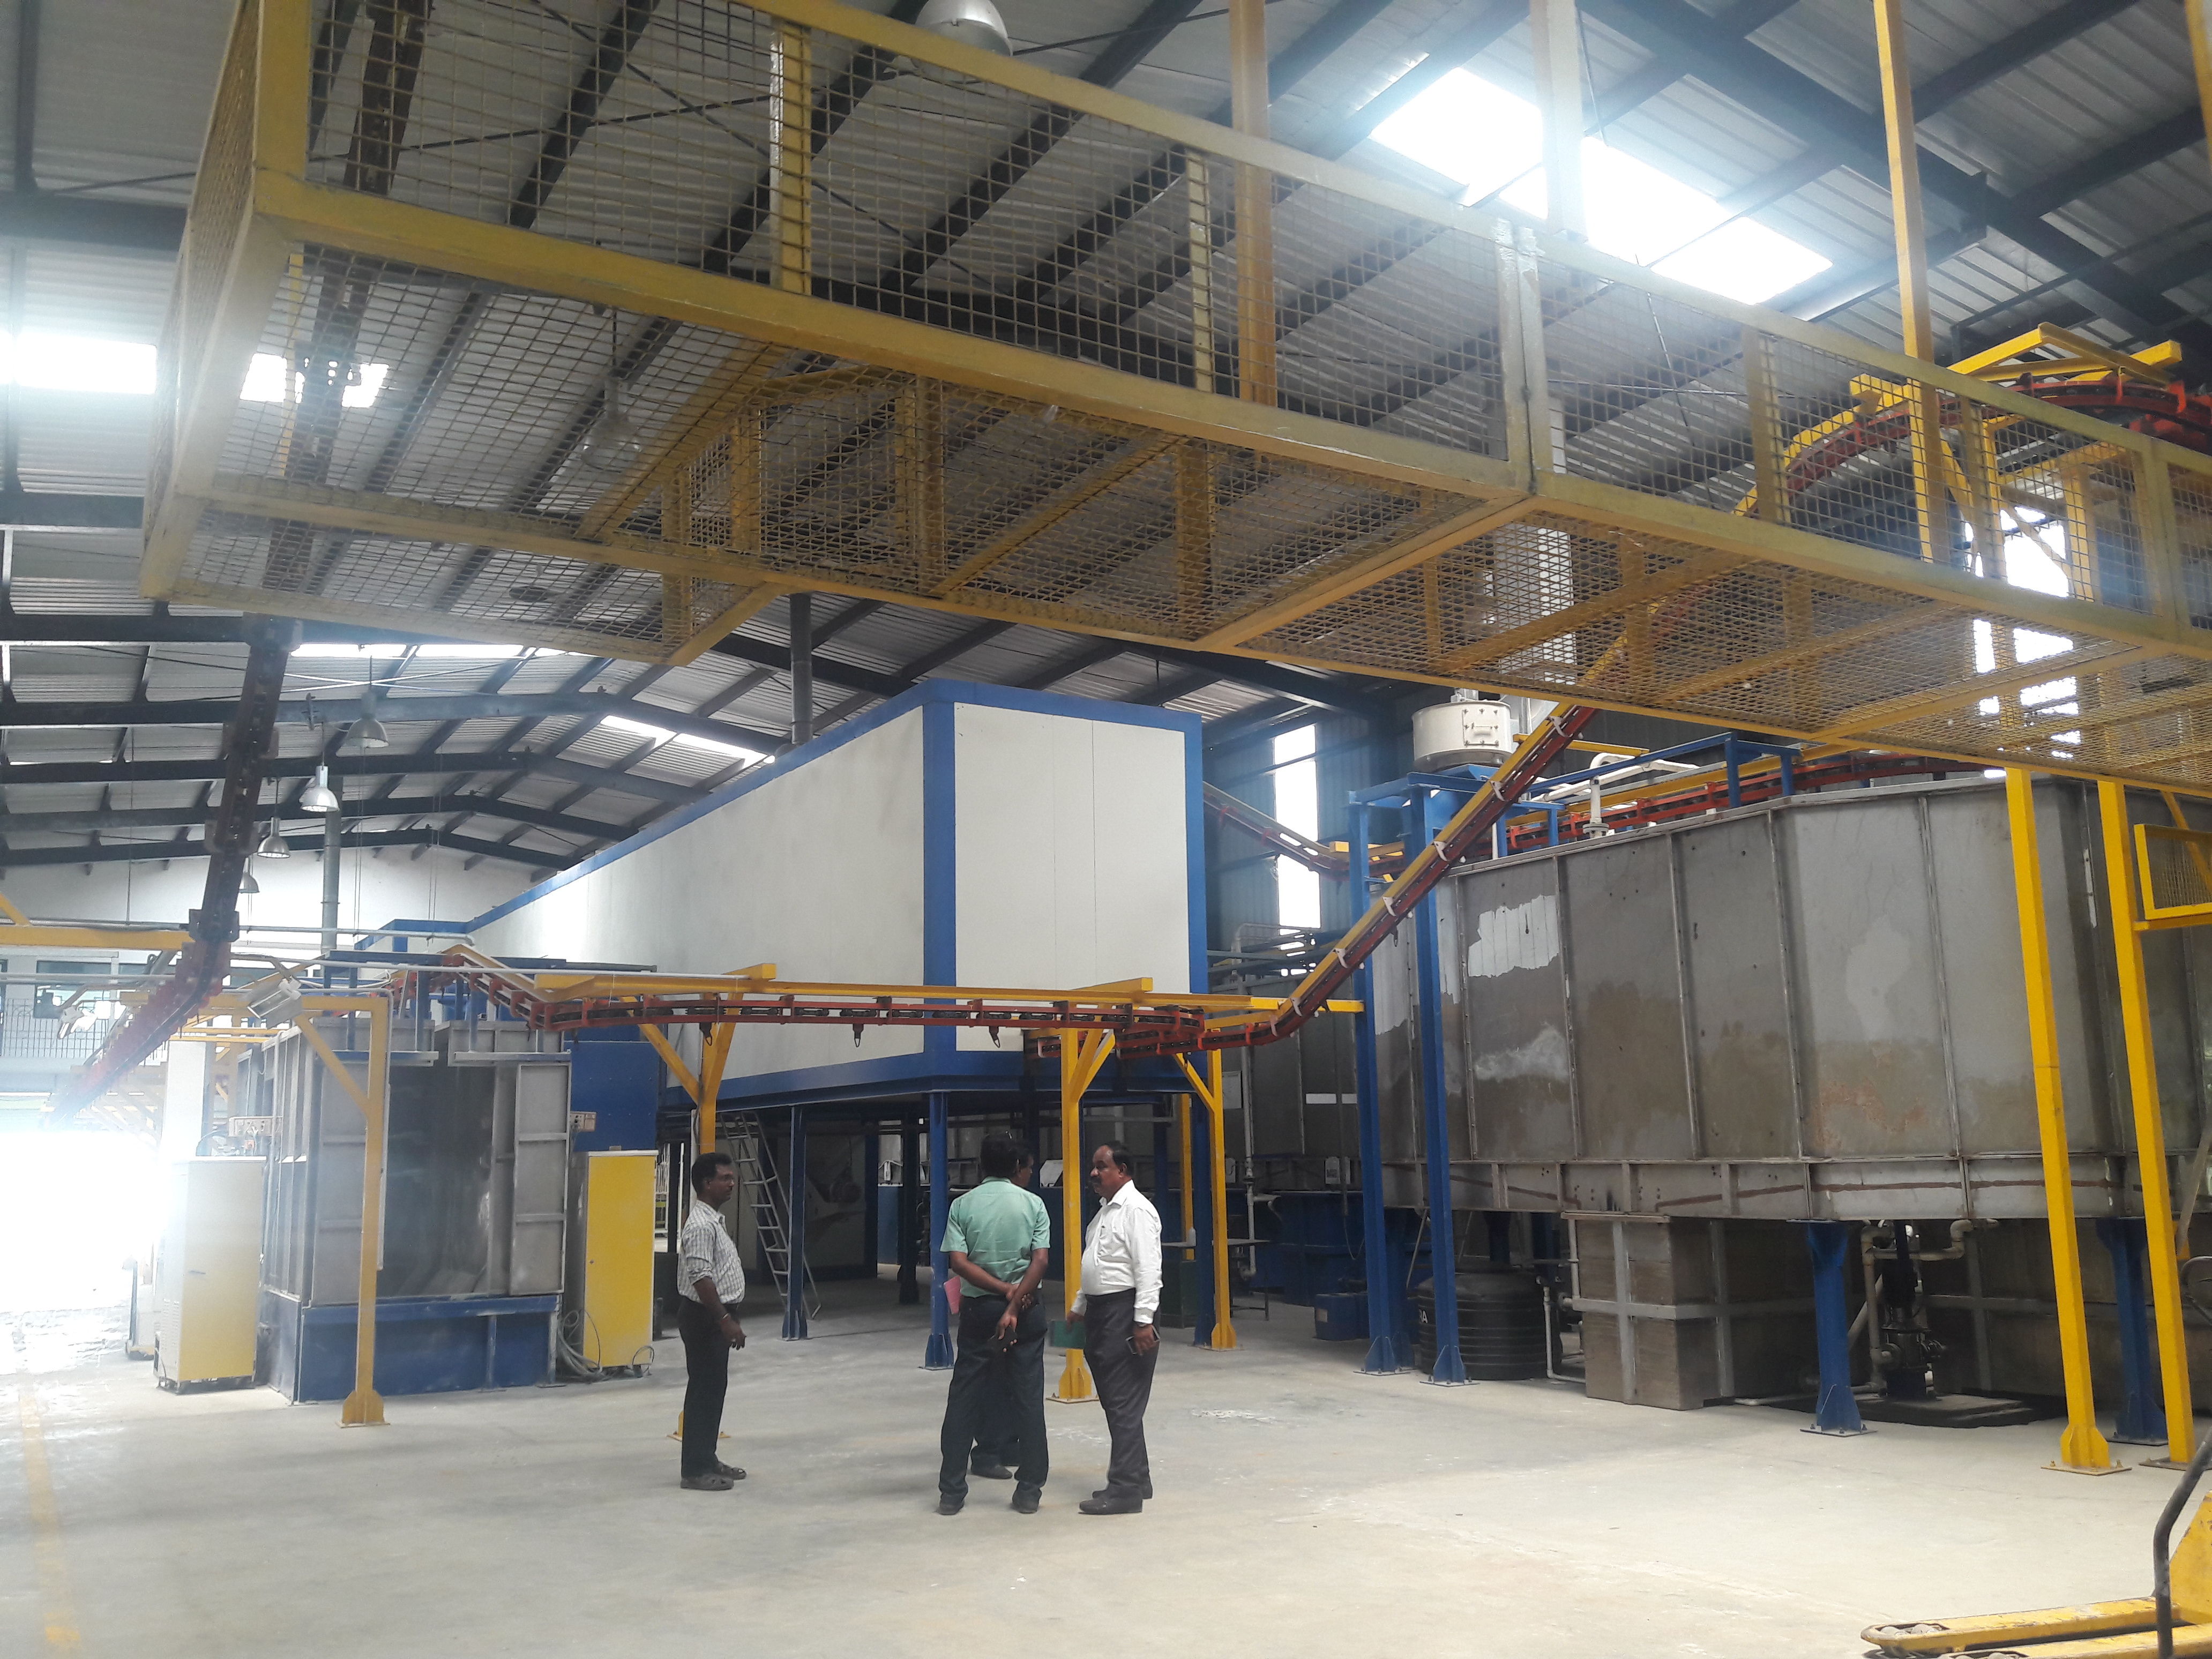 Fully Automatic Powder Coating Plant Supplier,Distributor and